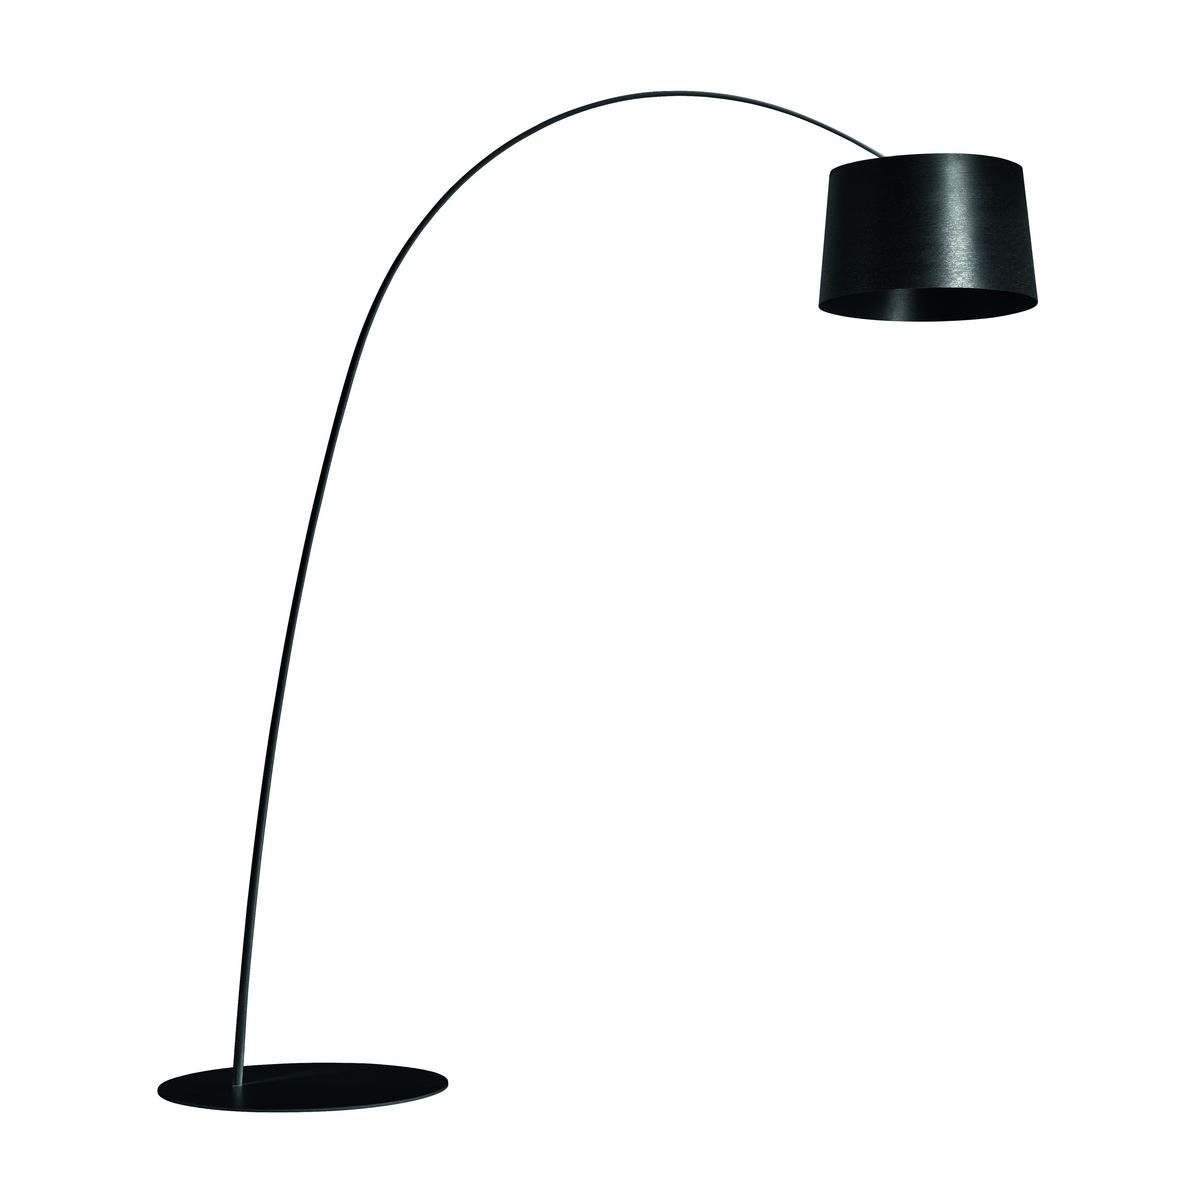 Twiggy LED Floor Lamp Foscarini Standing lamps  : none1200x1200 ID819762 2213e070e0e6695484035cf8b66c9f09 from www.ambientedirect.com size 1200 x 1200 jpeg 25kB